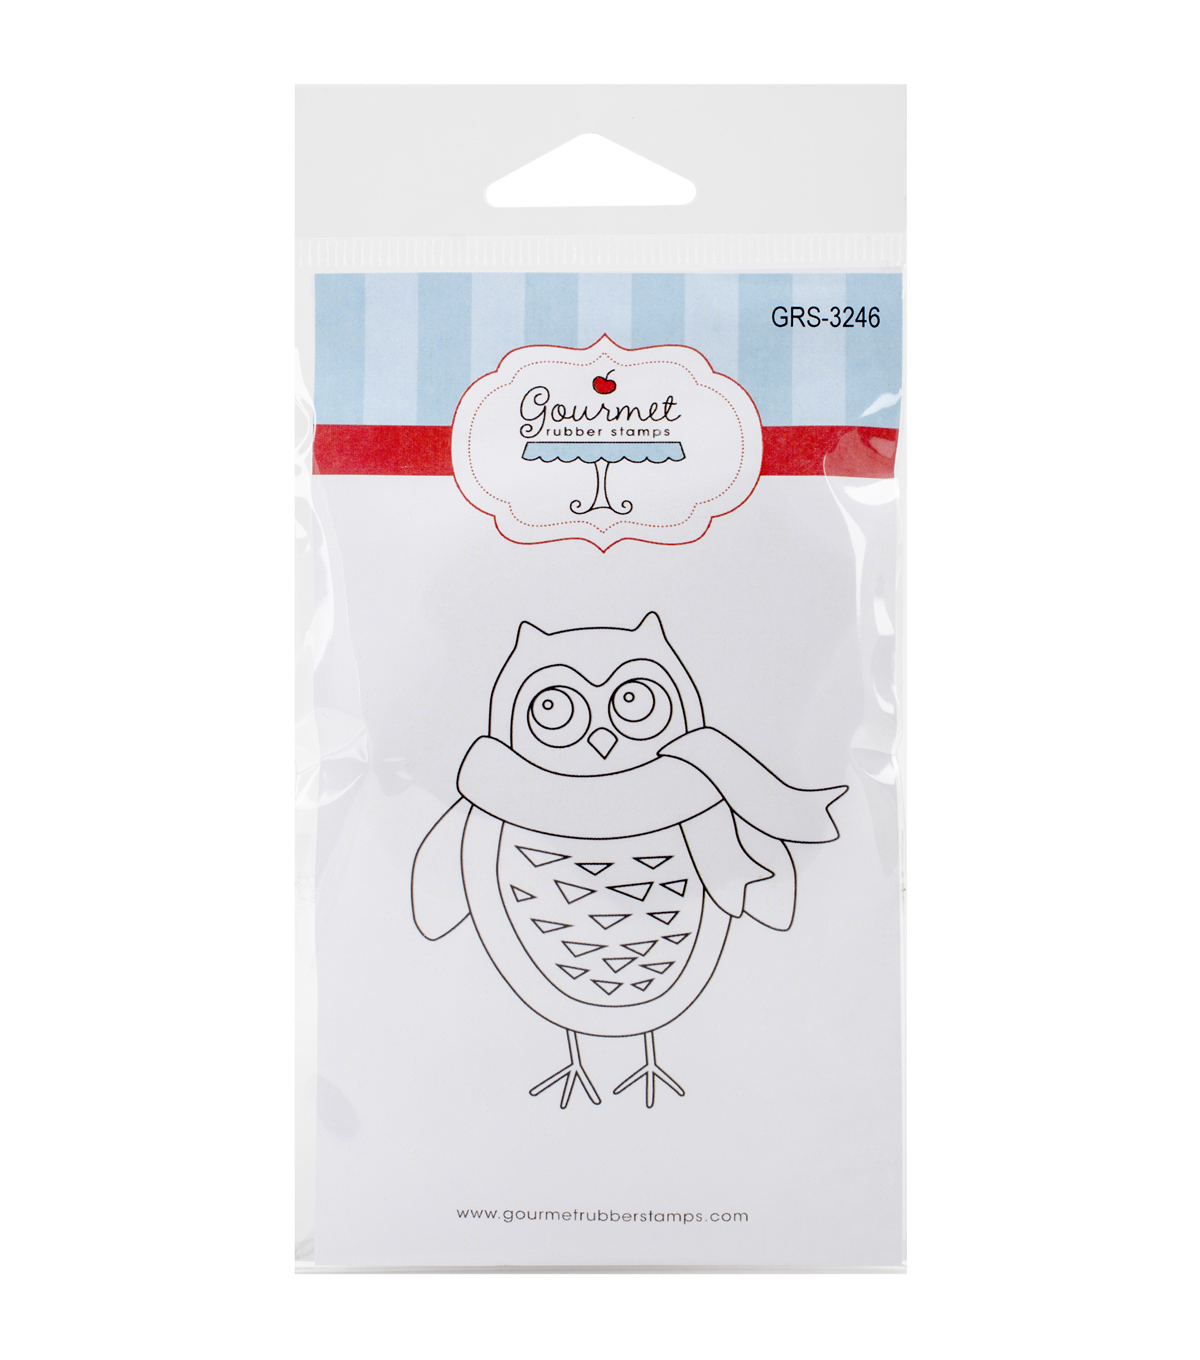 Gourmet Rubber Stamps Cling Stamps-Large Owl